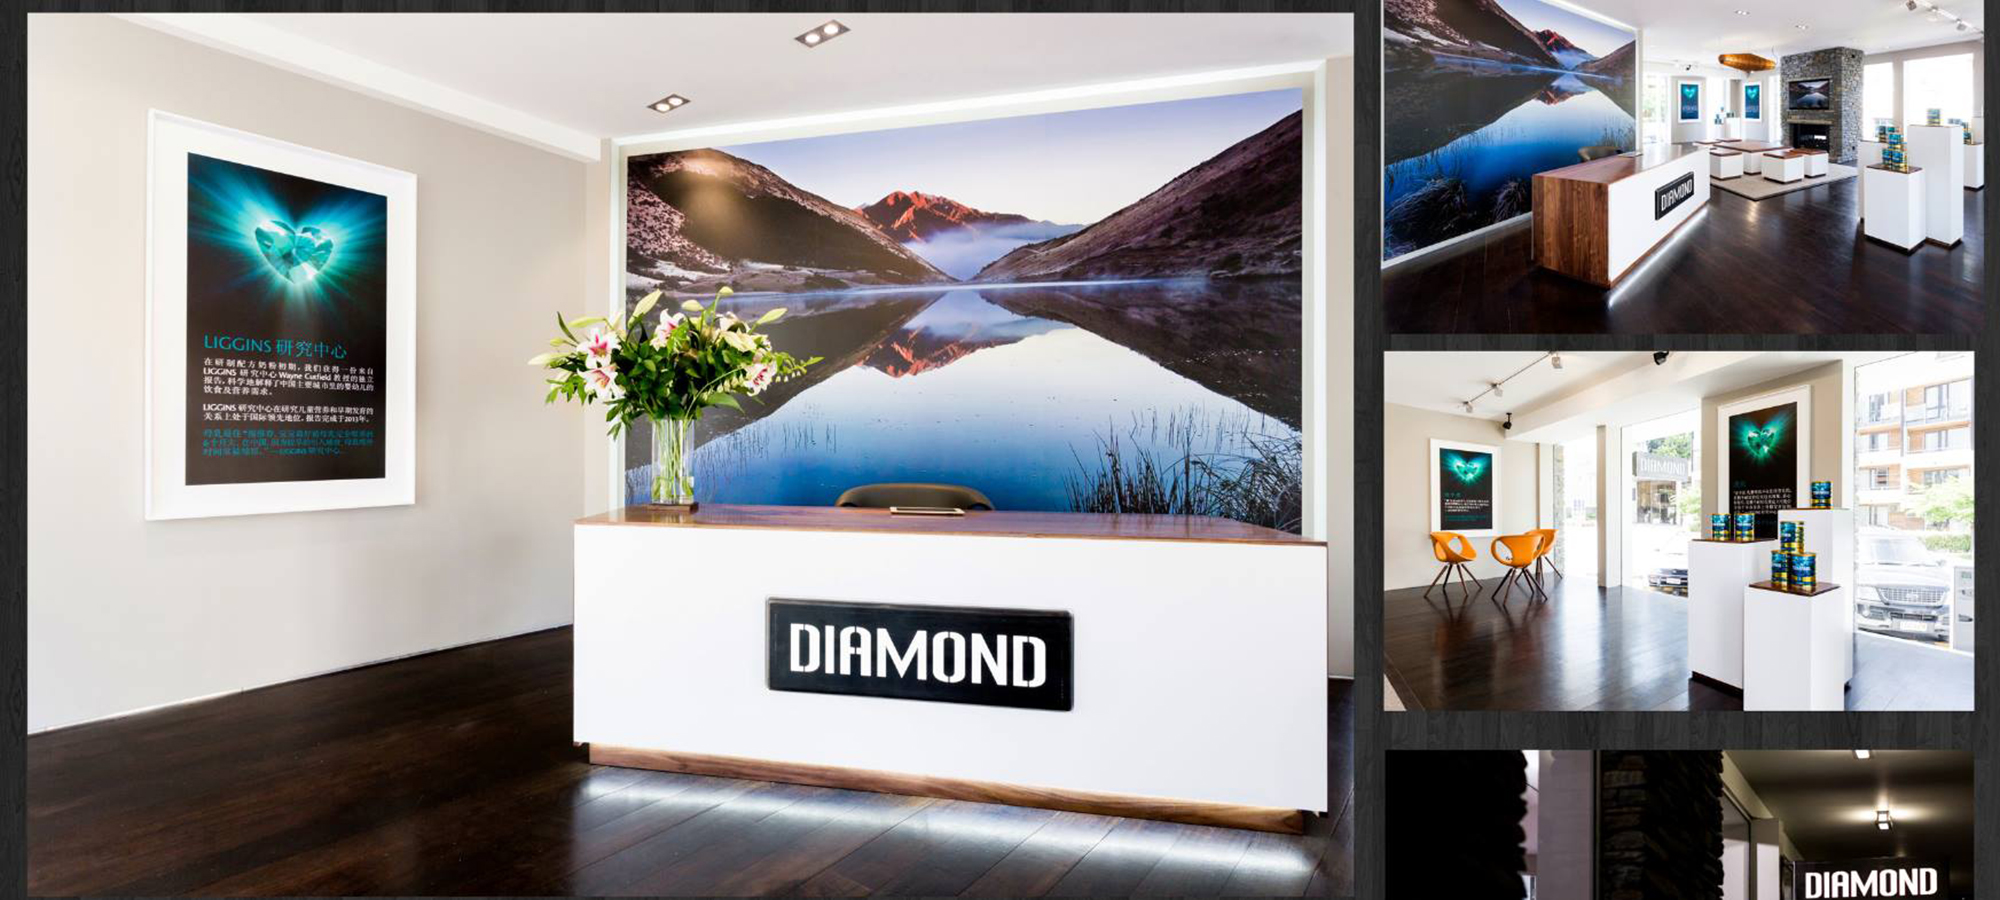 Diamond Project